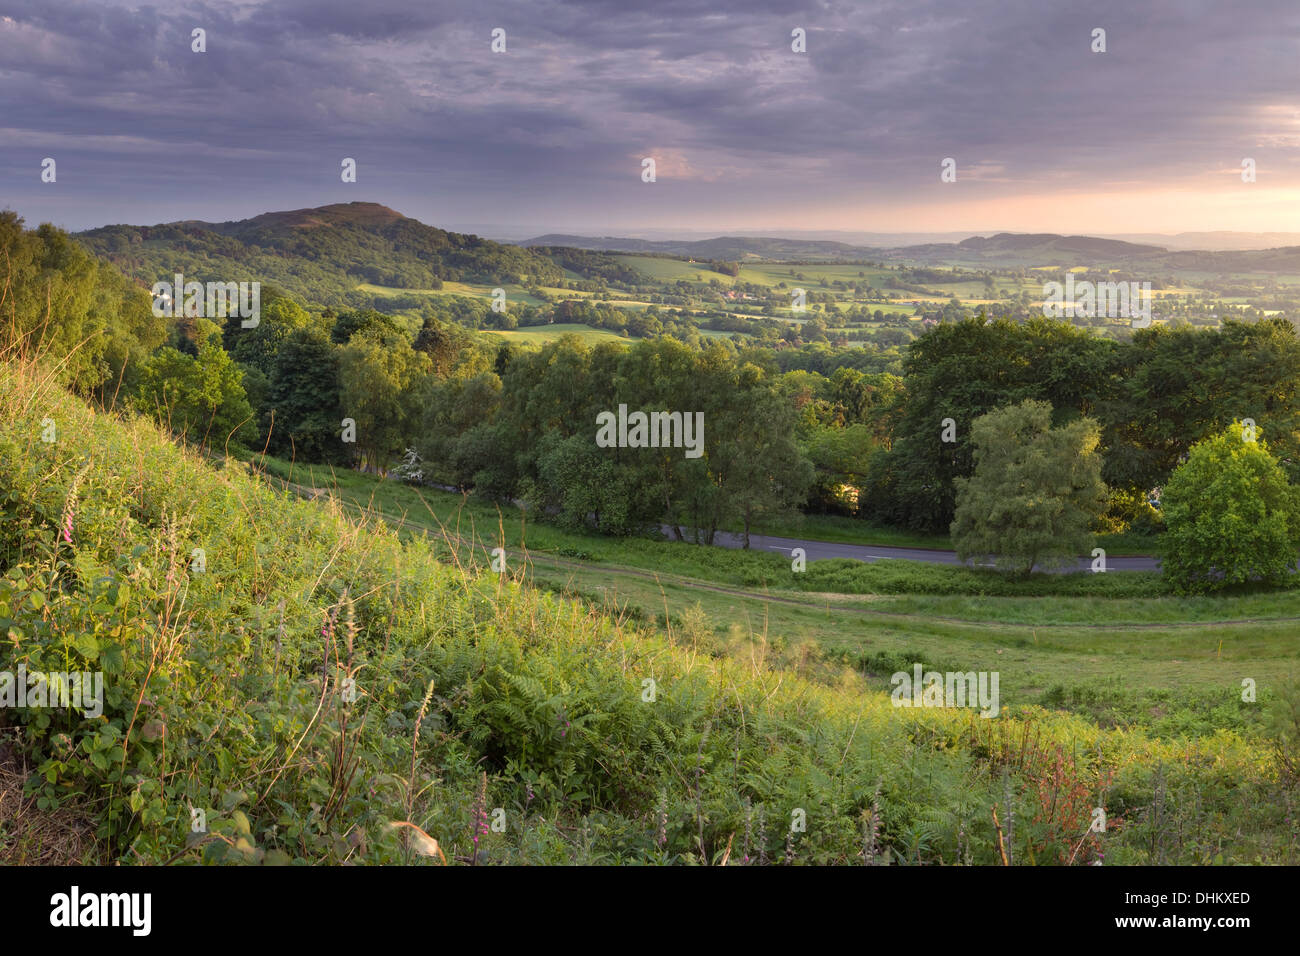 The B4232 leading to British Camp from the side of Pinnacle hill, Malvern Hills, Worcestershire at sunset. Stock Photo